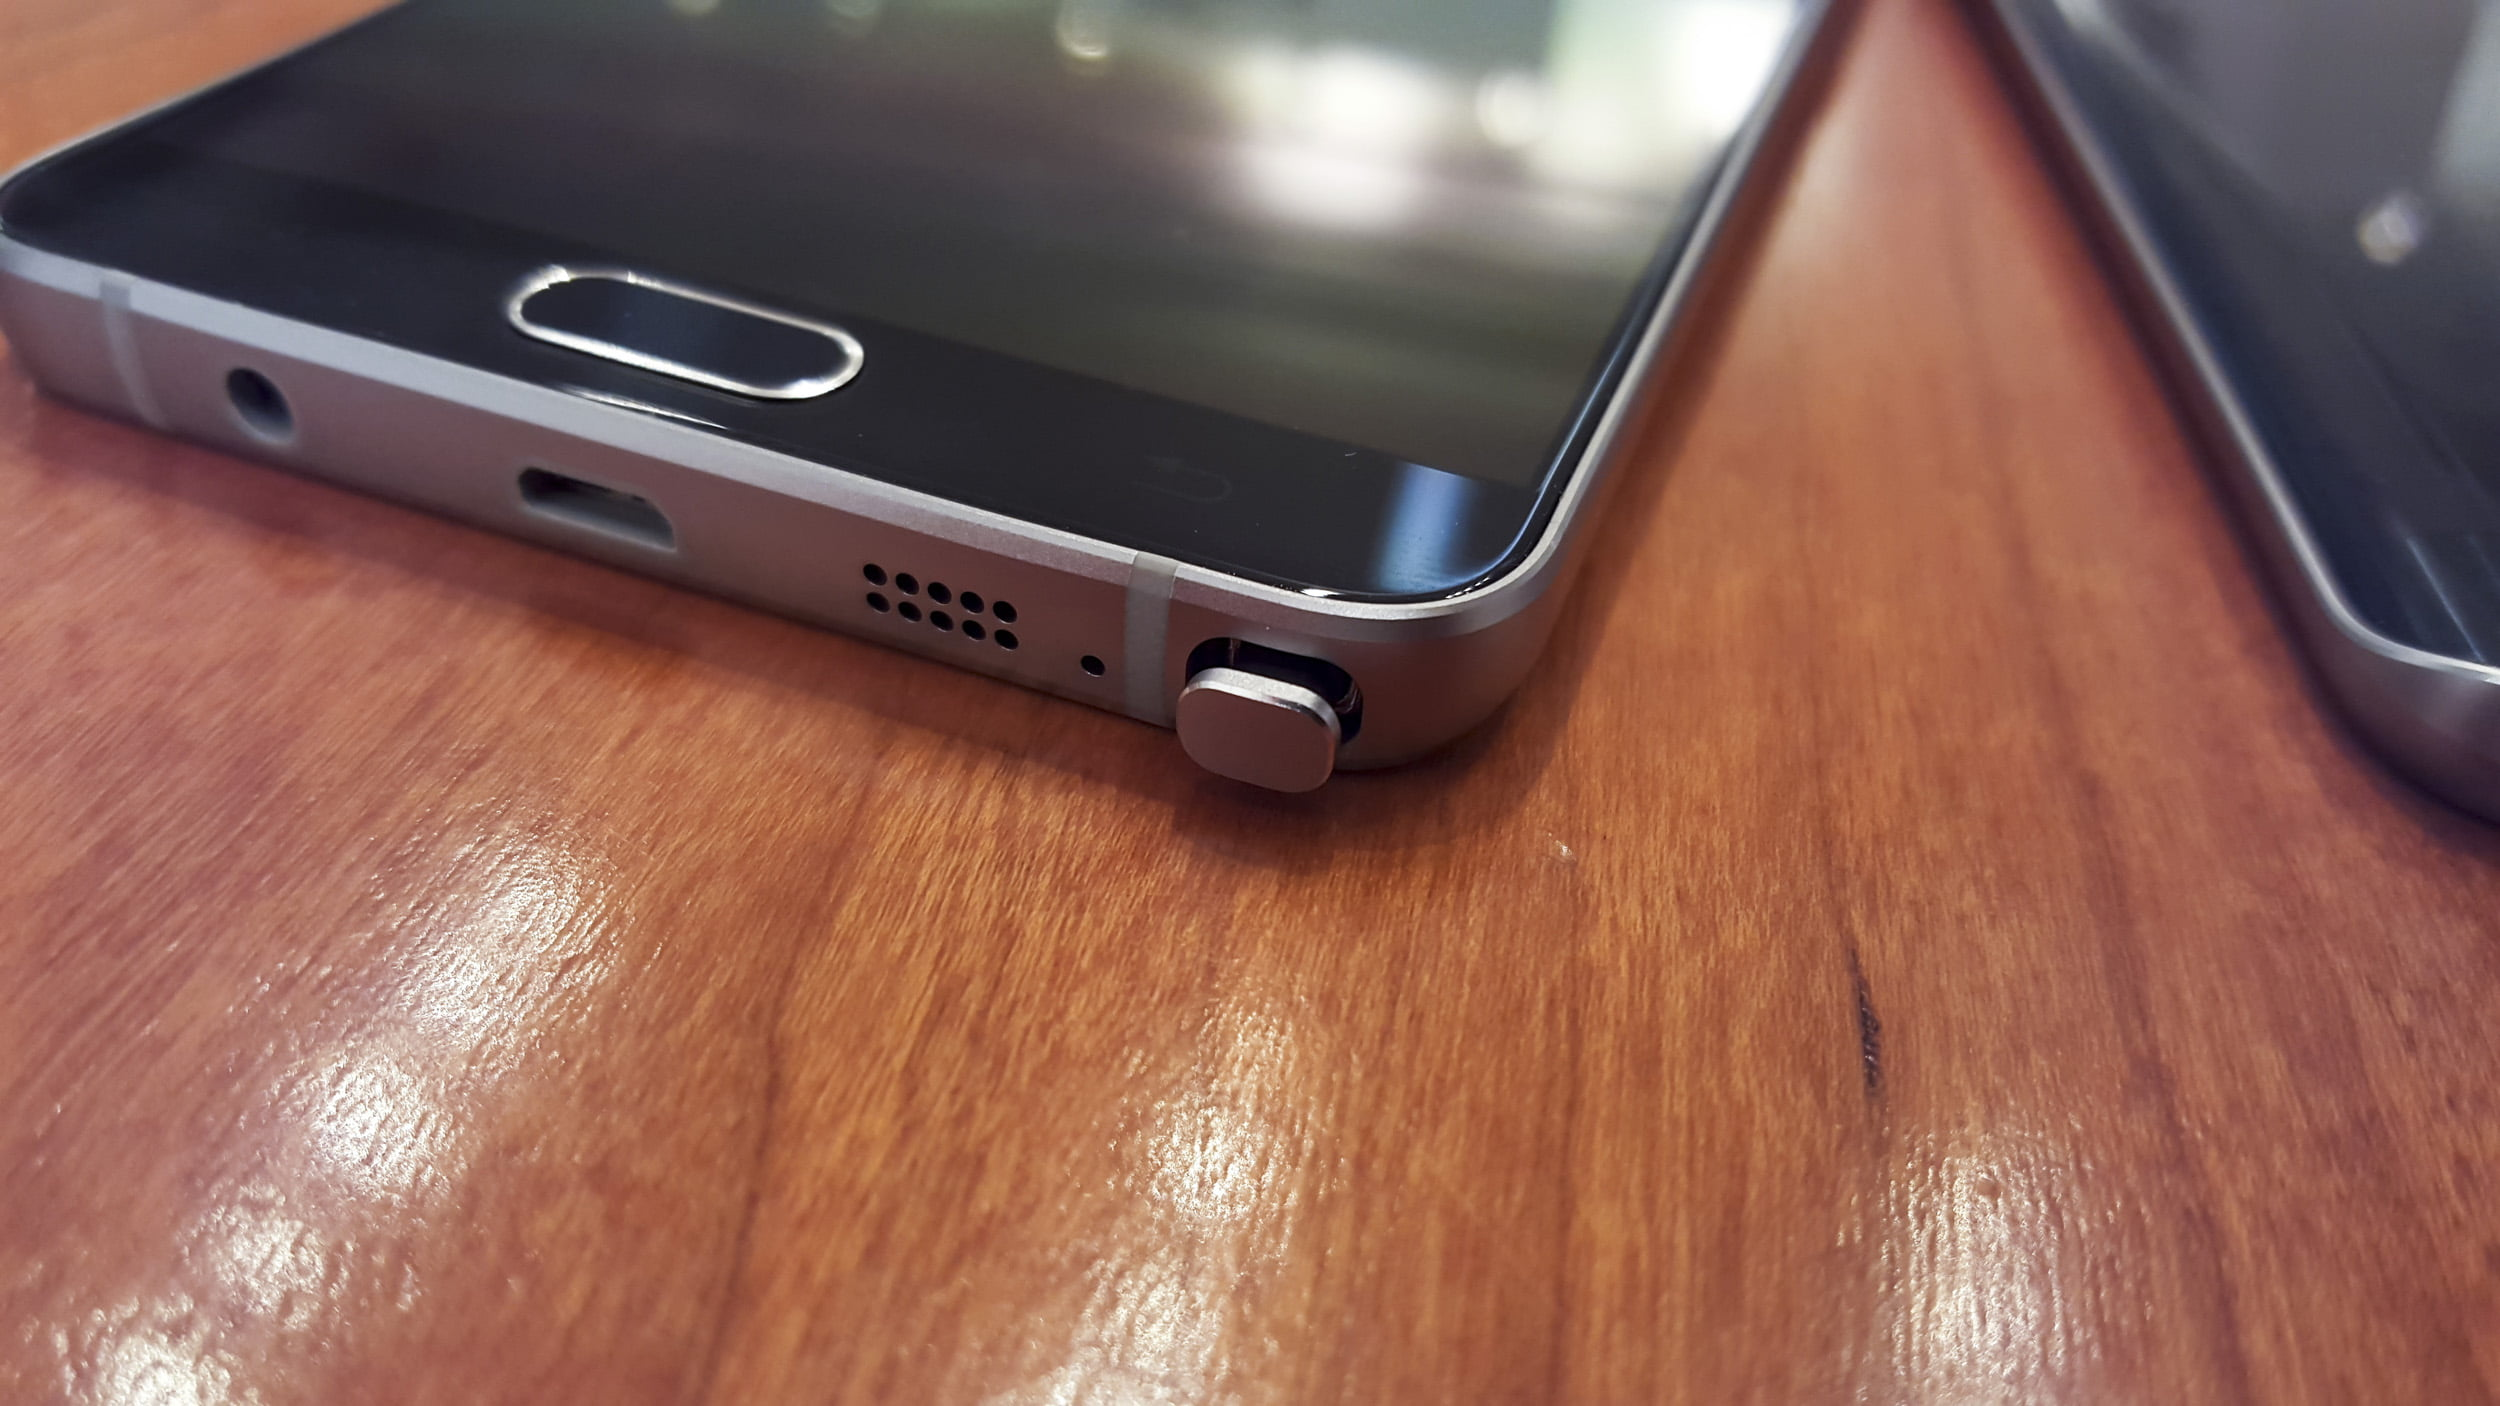 Samsung Galaxy Note 5 detail